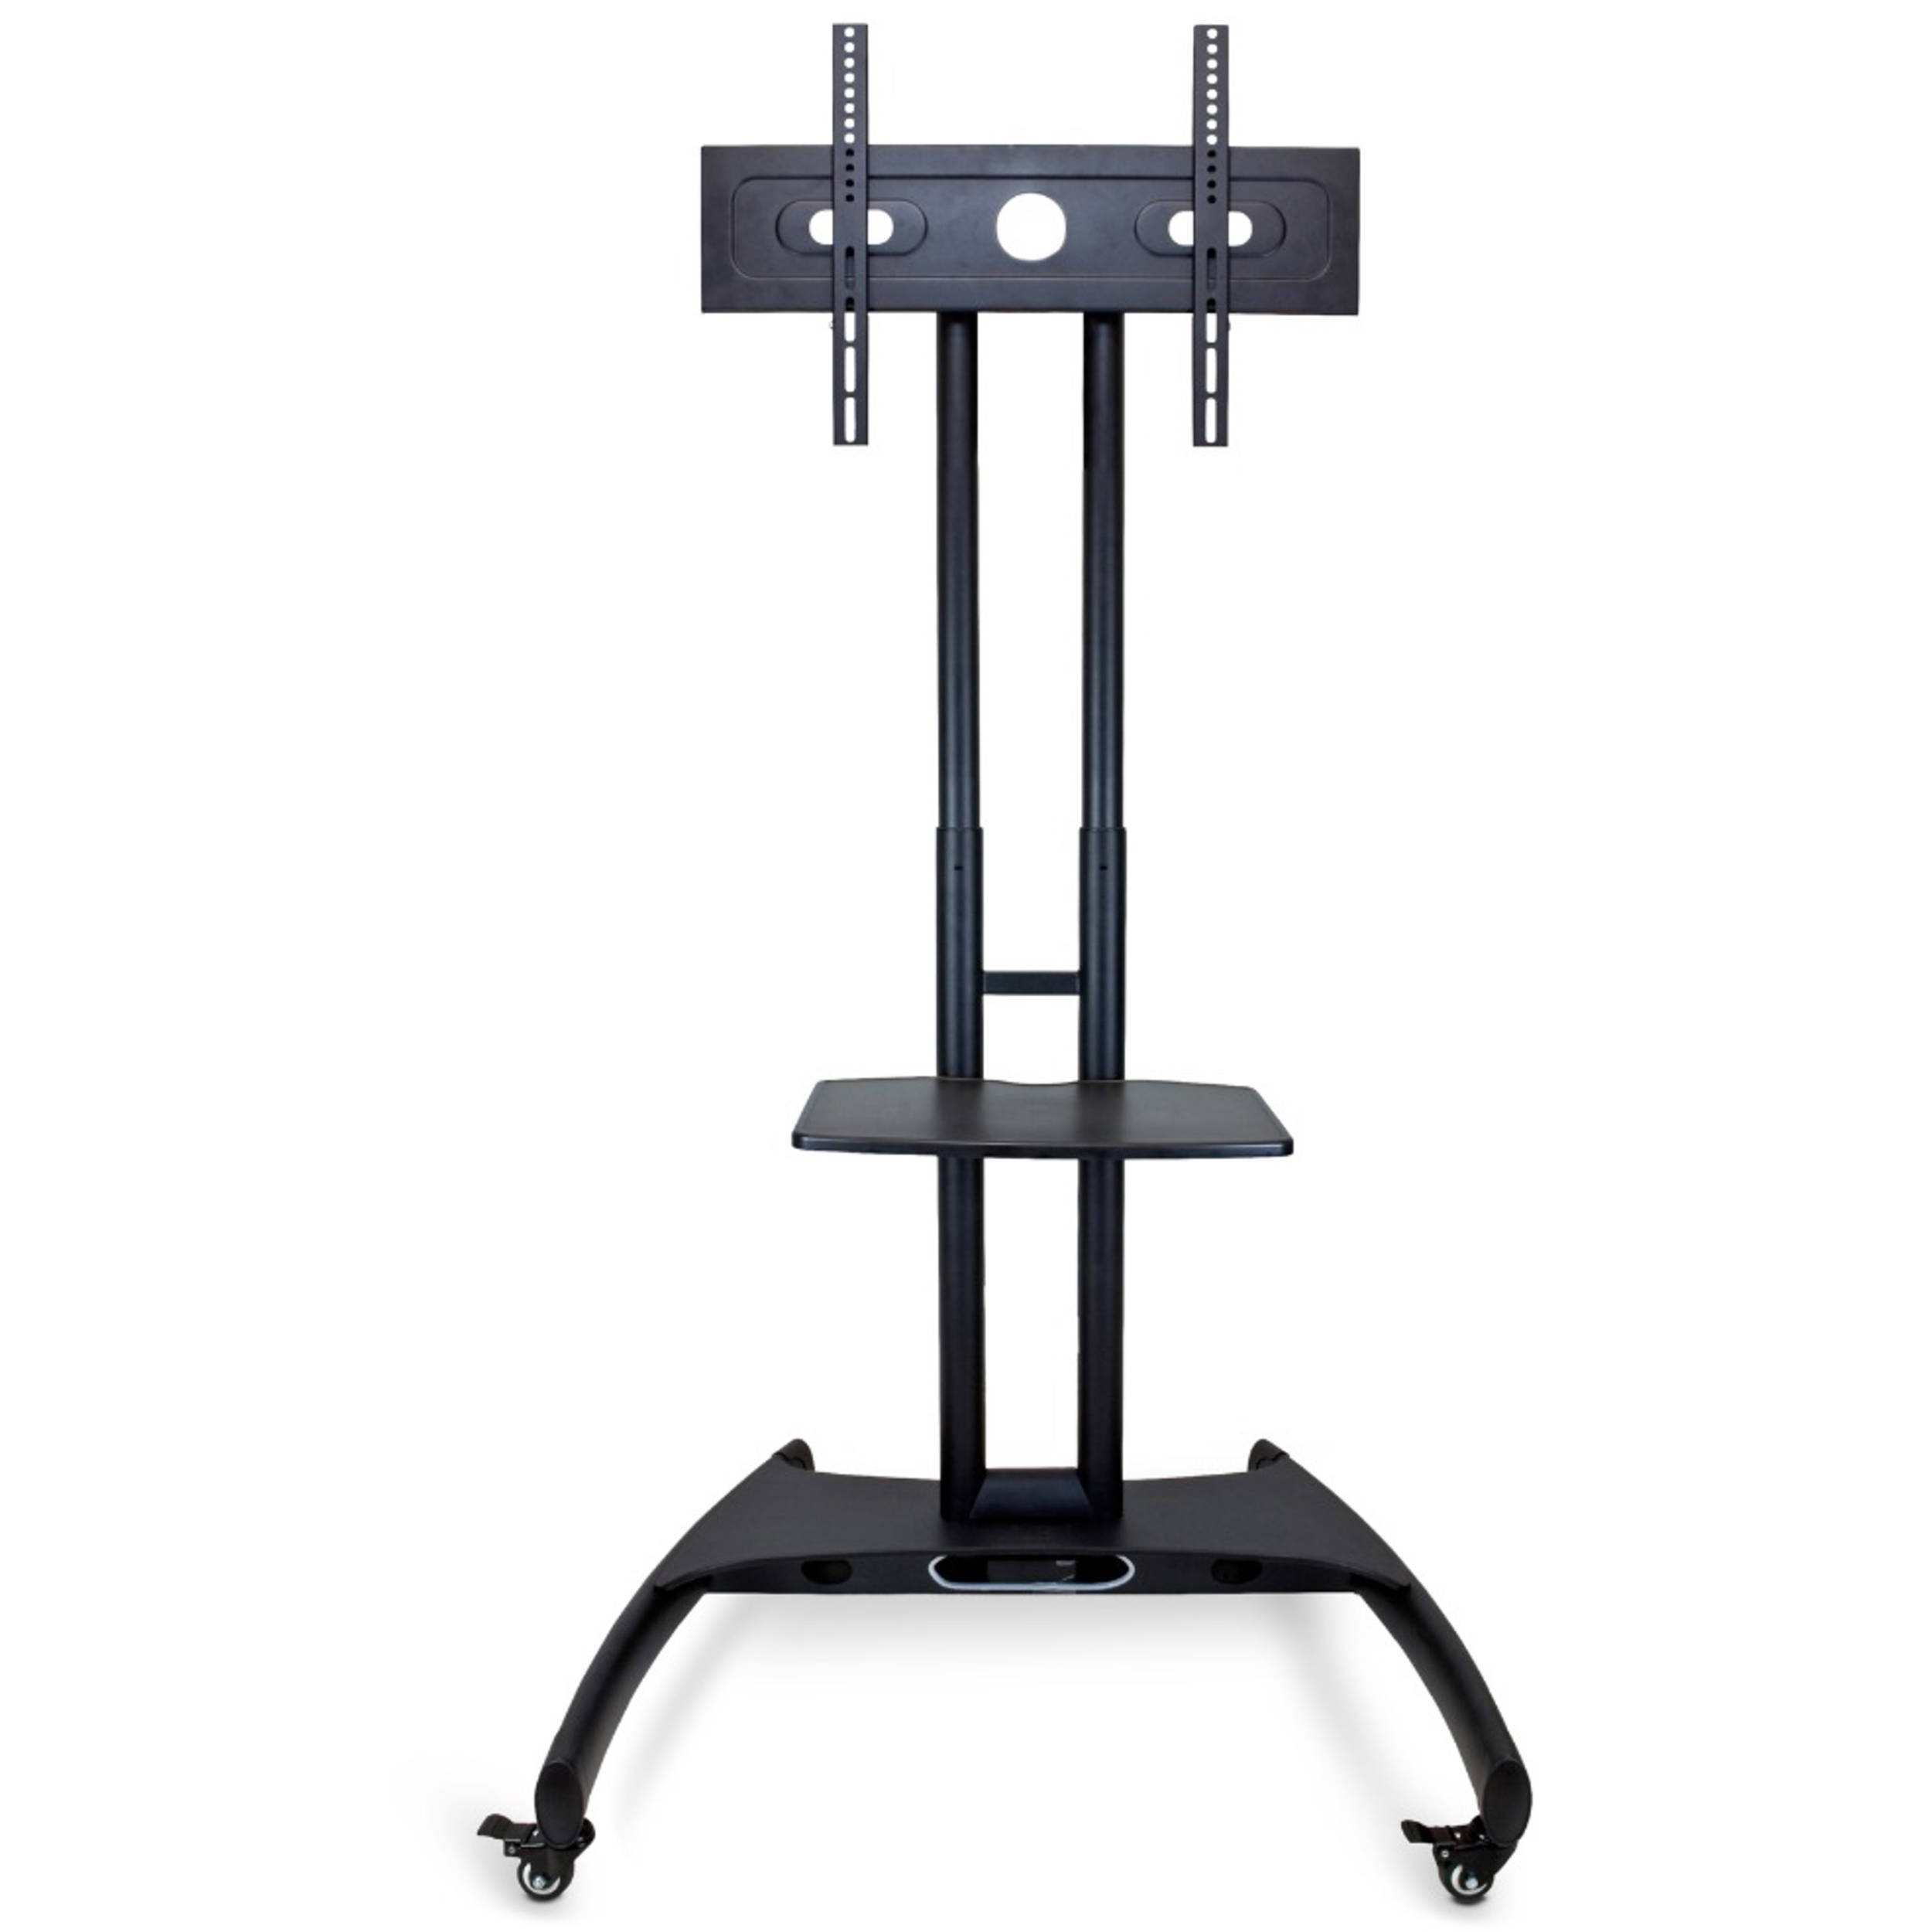 luxor fp adjustable height lcd tv stand fp bh photo - luxor fp adjustable height lcd tv stand andnbspmount with accessoryshelf